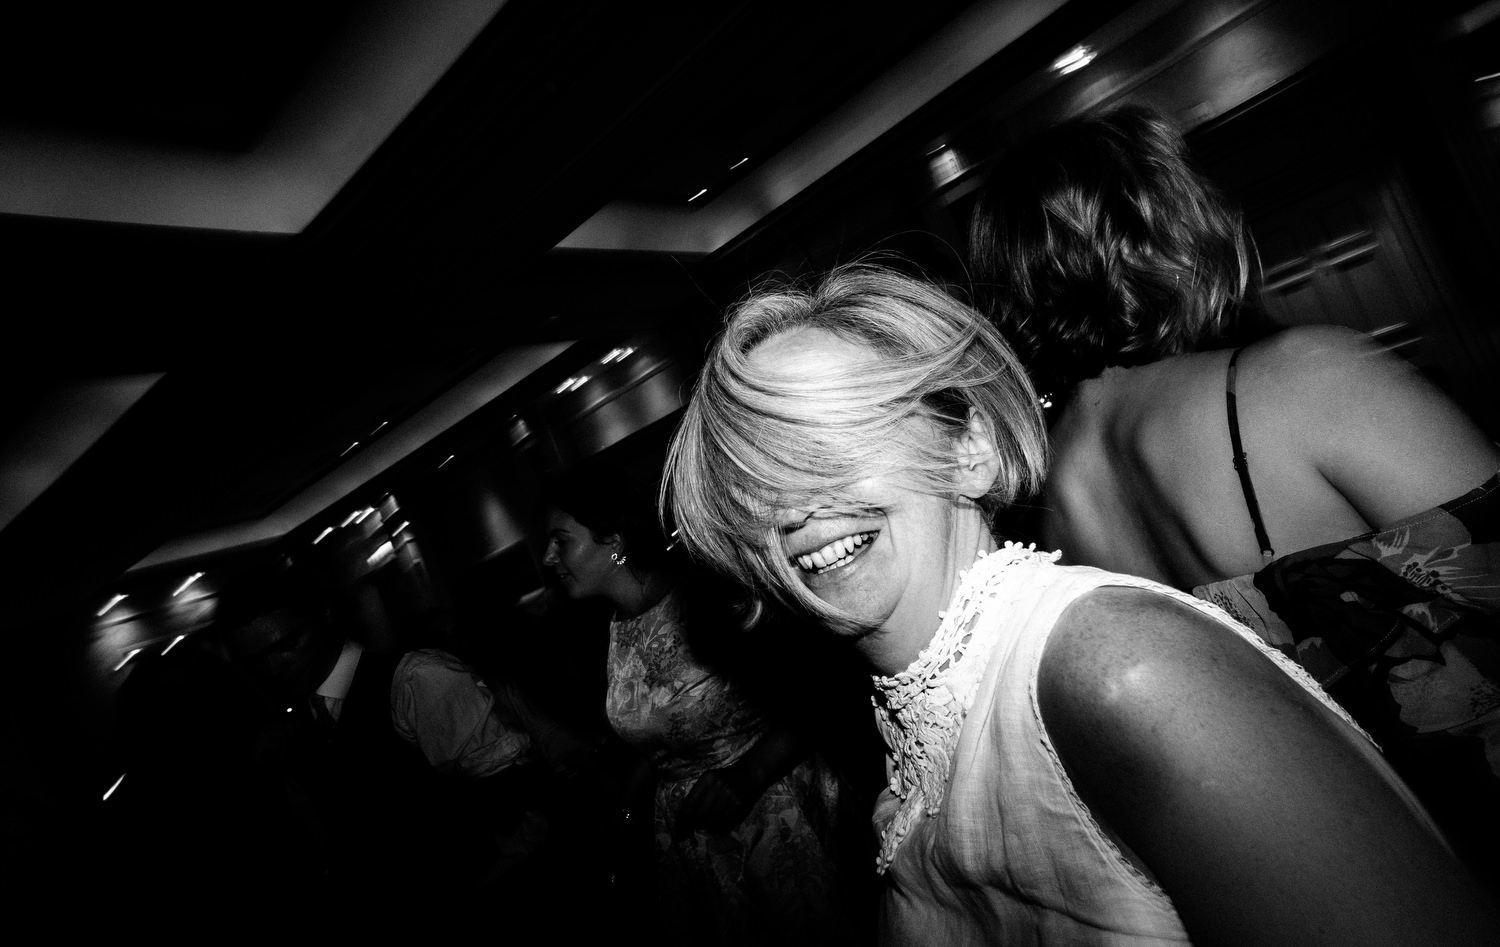 dmp0672_photographer_wedding_dublin_david_mcclelland_candid_photography_fujifilm_shelbourne_reception_documentary